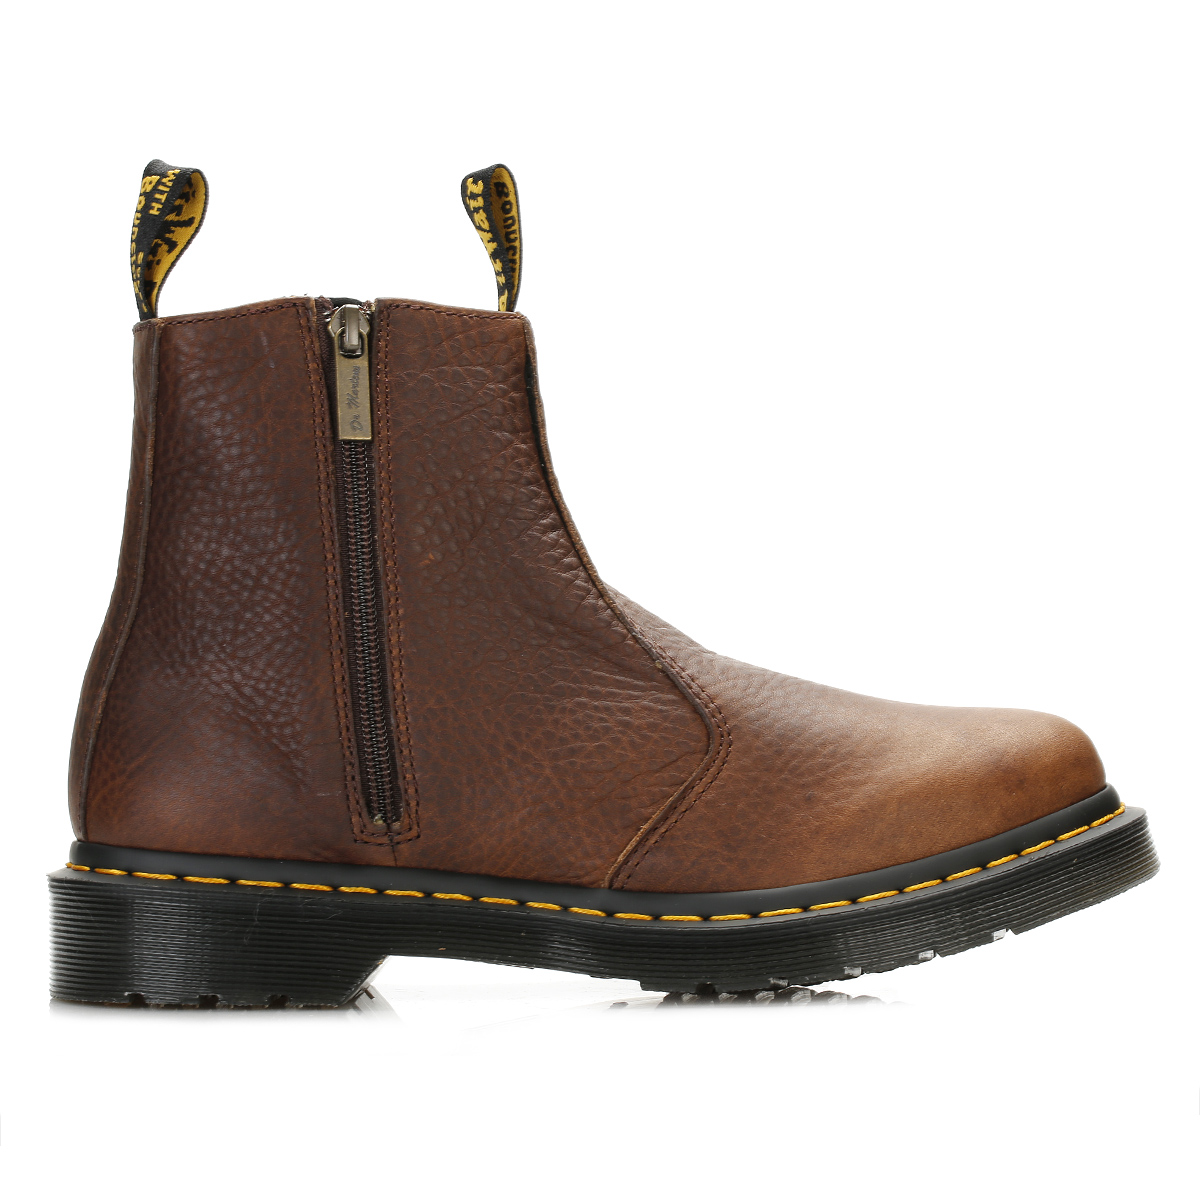 Barratts shoes is modern all in one price comparison and review site for shoes. With the best deals on the web. We have a fabulous collection of shoes showcasing the latest on trend shoes for each and every season, along with everyday shoe cupboard essentials.